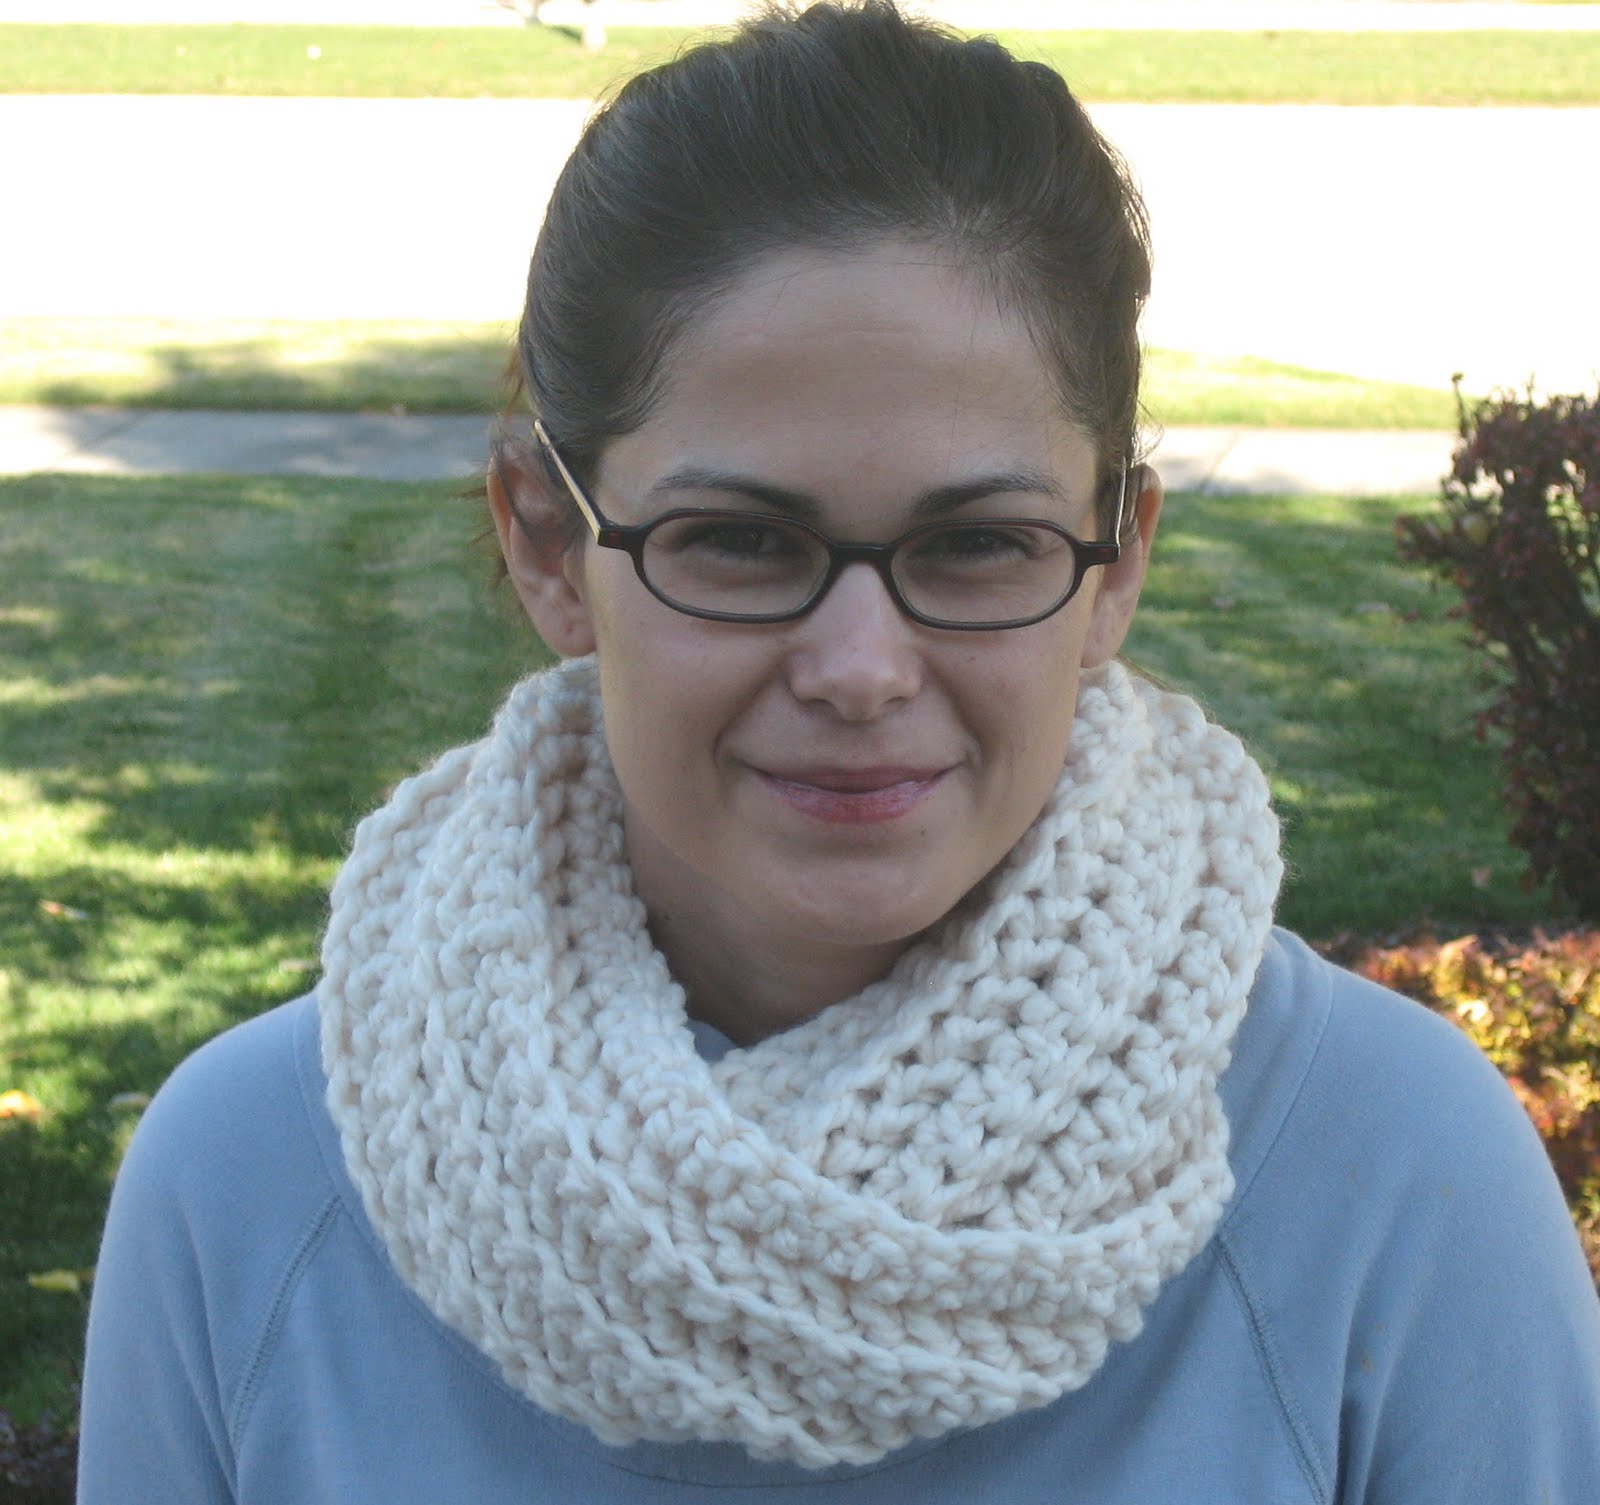 Crochet n play designs my favorite free crochet patterns chunky cowl my favorite free crochet patterns chunky cowl bankloansurffo Gallery